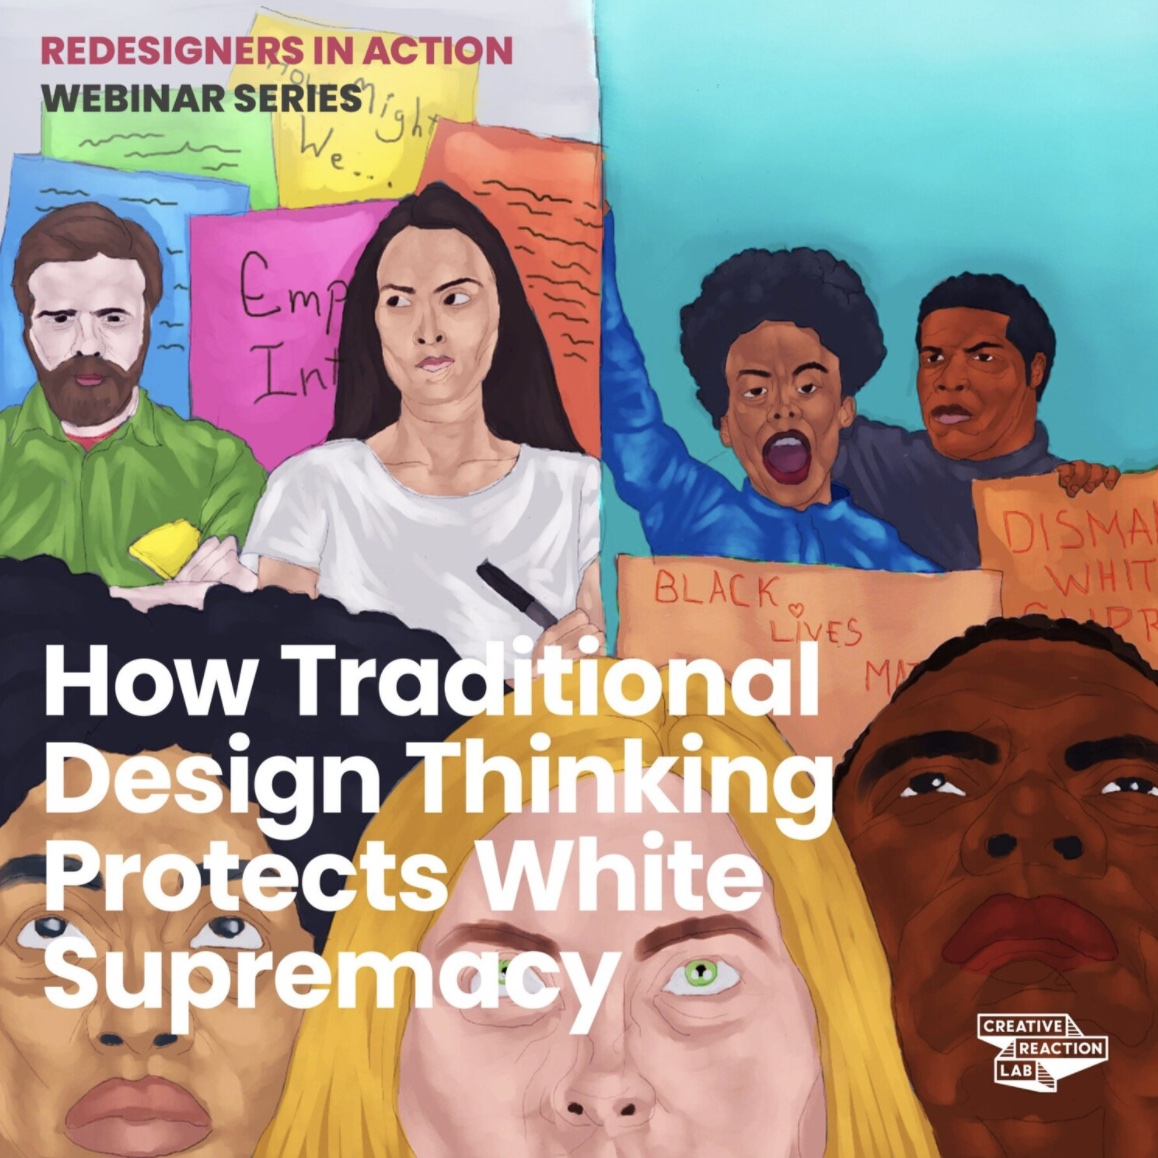 How Traditional Design Thinking Protects White Supremacy